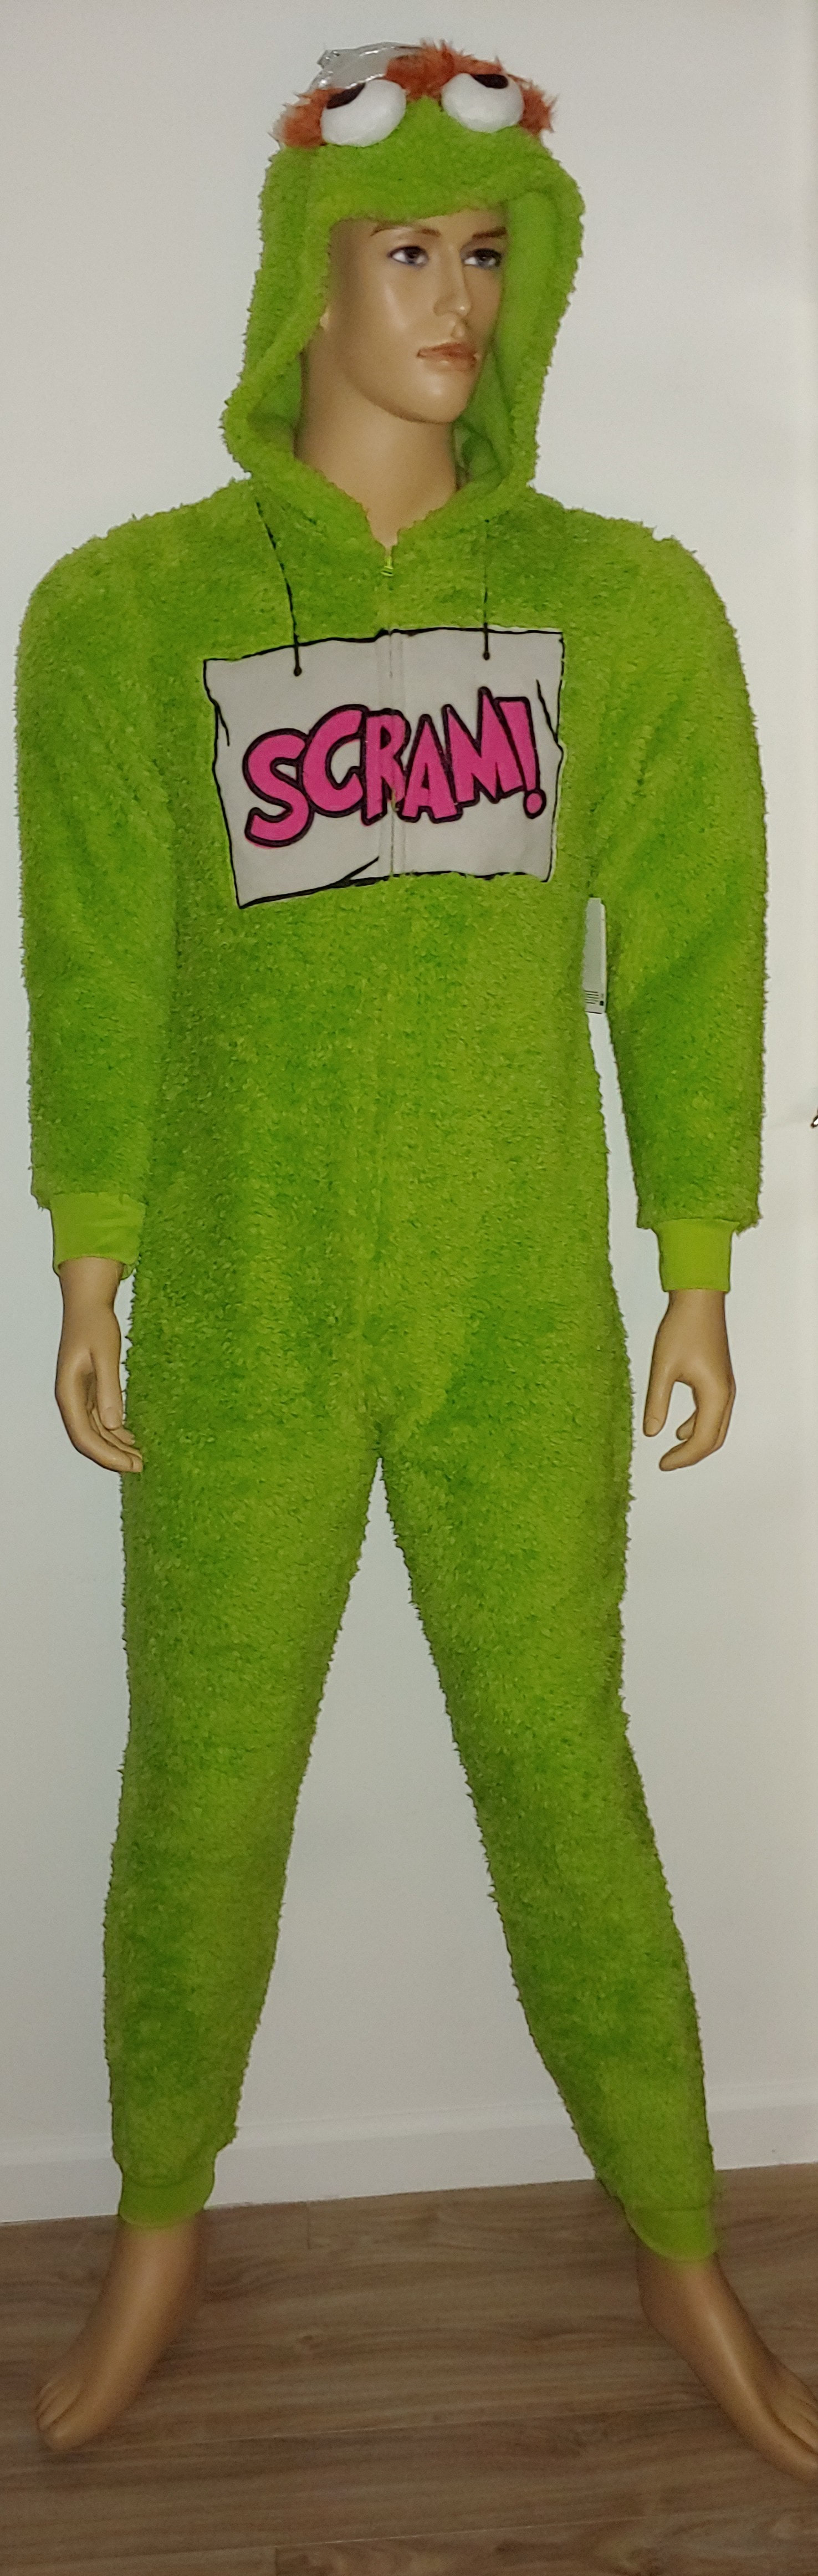 Unisex Onsie Pub Crawl Green Sesame Street Oscar The Grouch Pajamas Costume